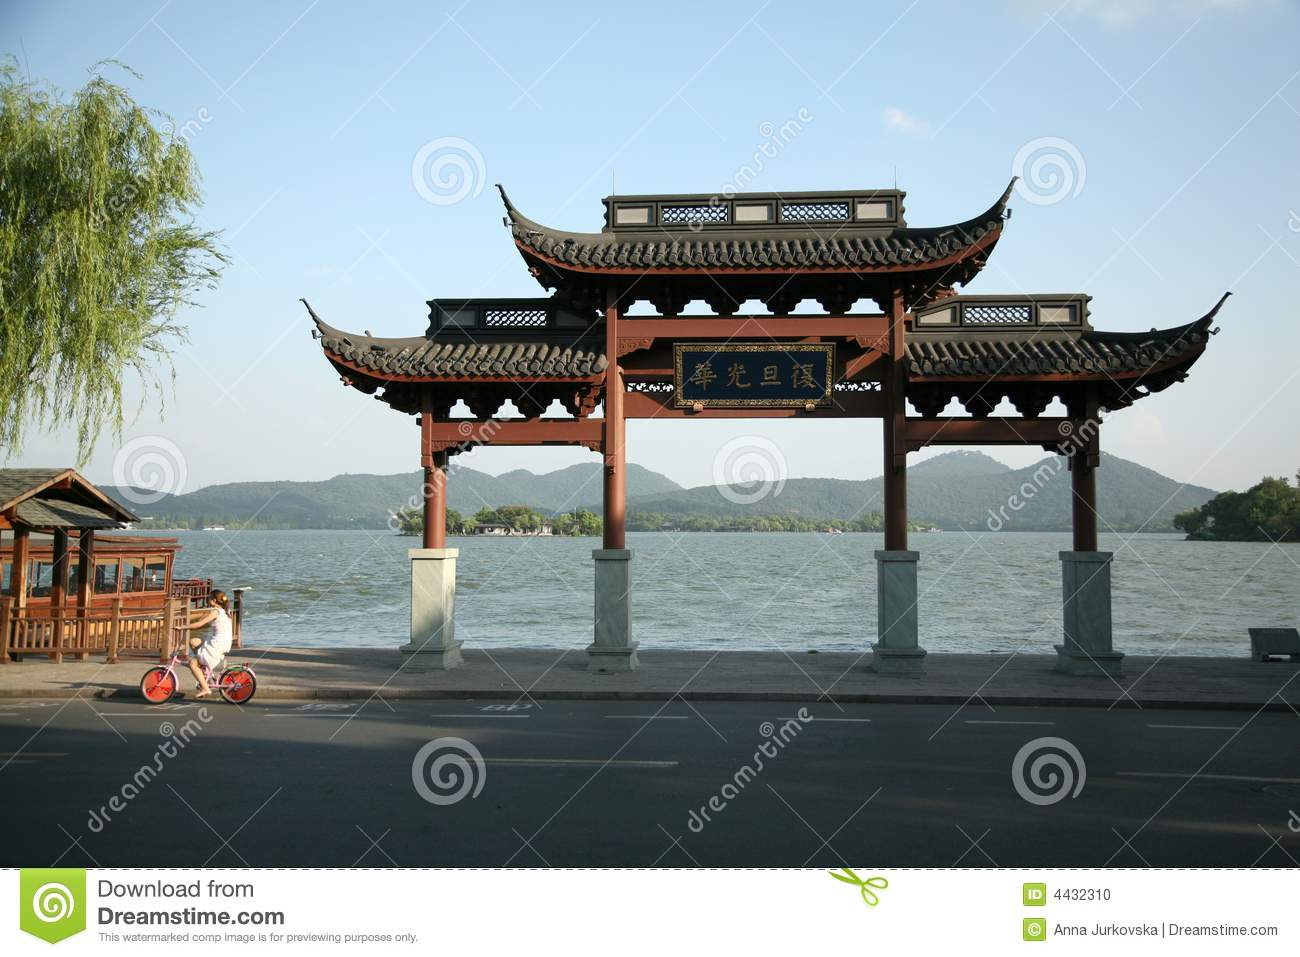 Chinese archway stock photo. Image of spring, nature, roof - 4432310